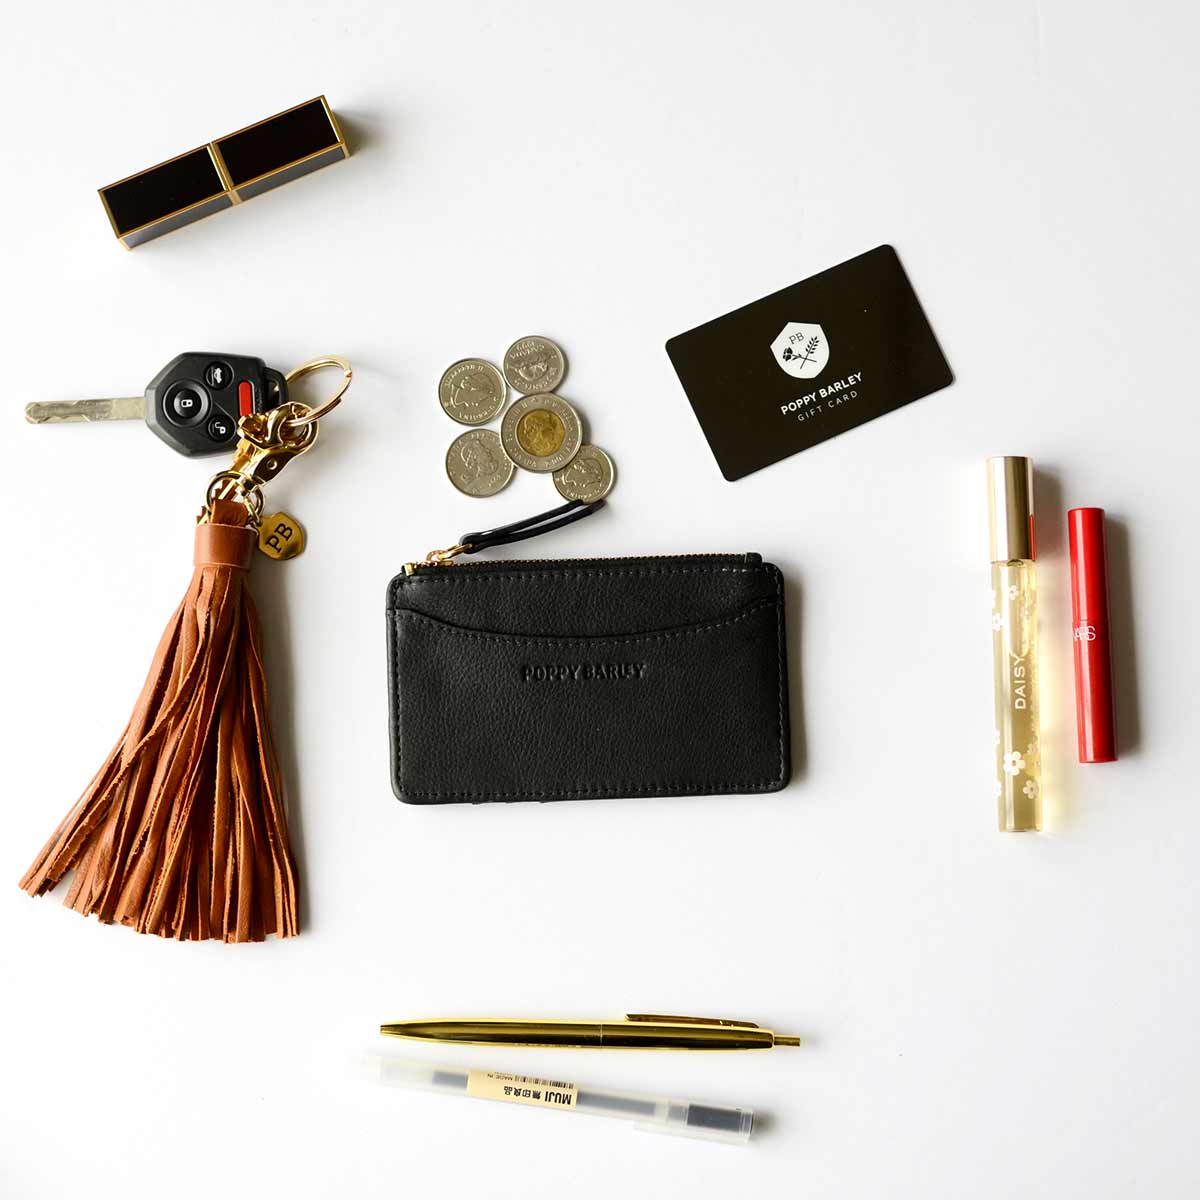 The Travel Zip Wallet - Poppy Barley